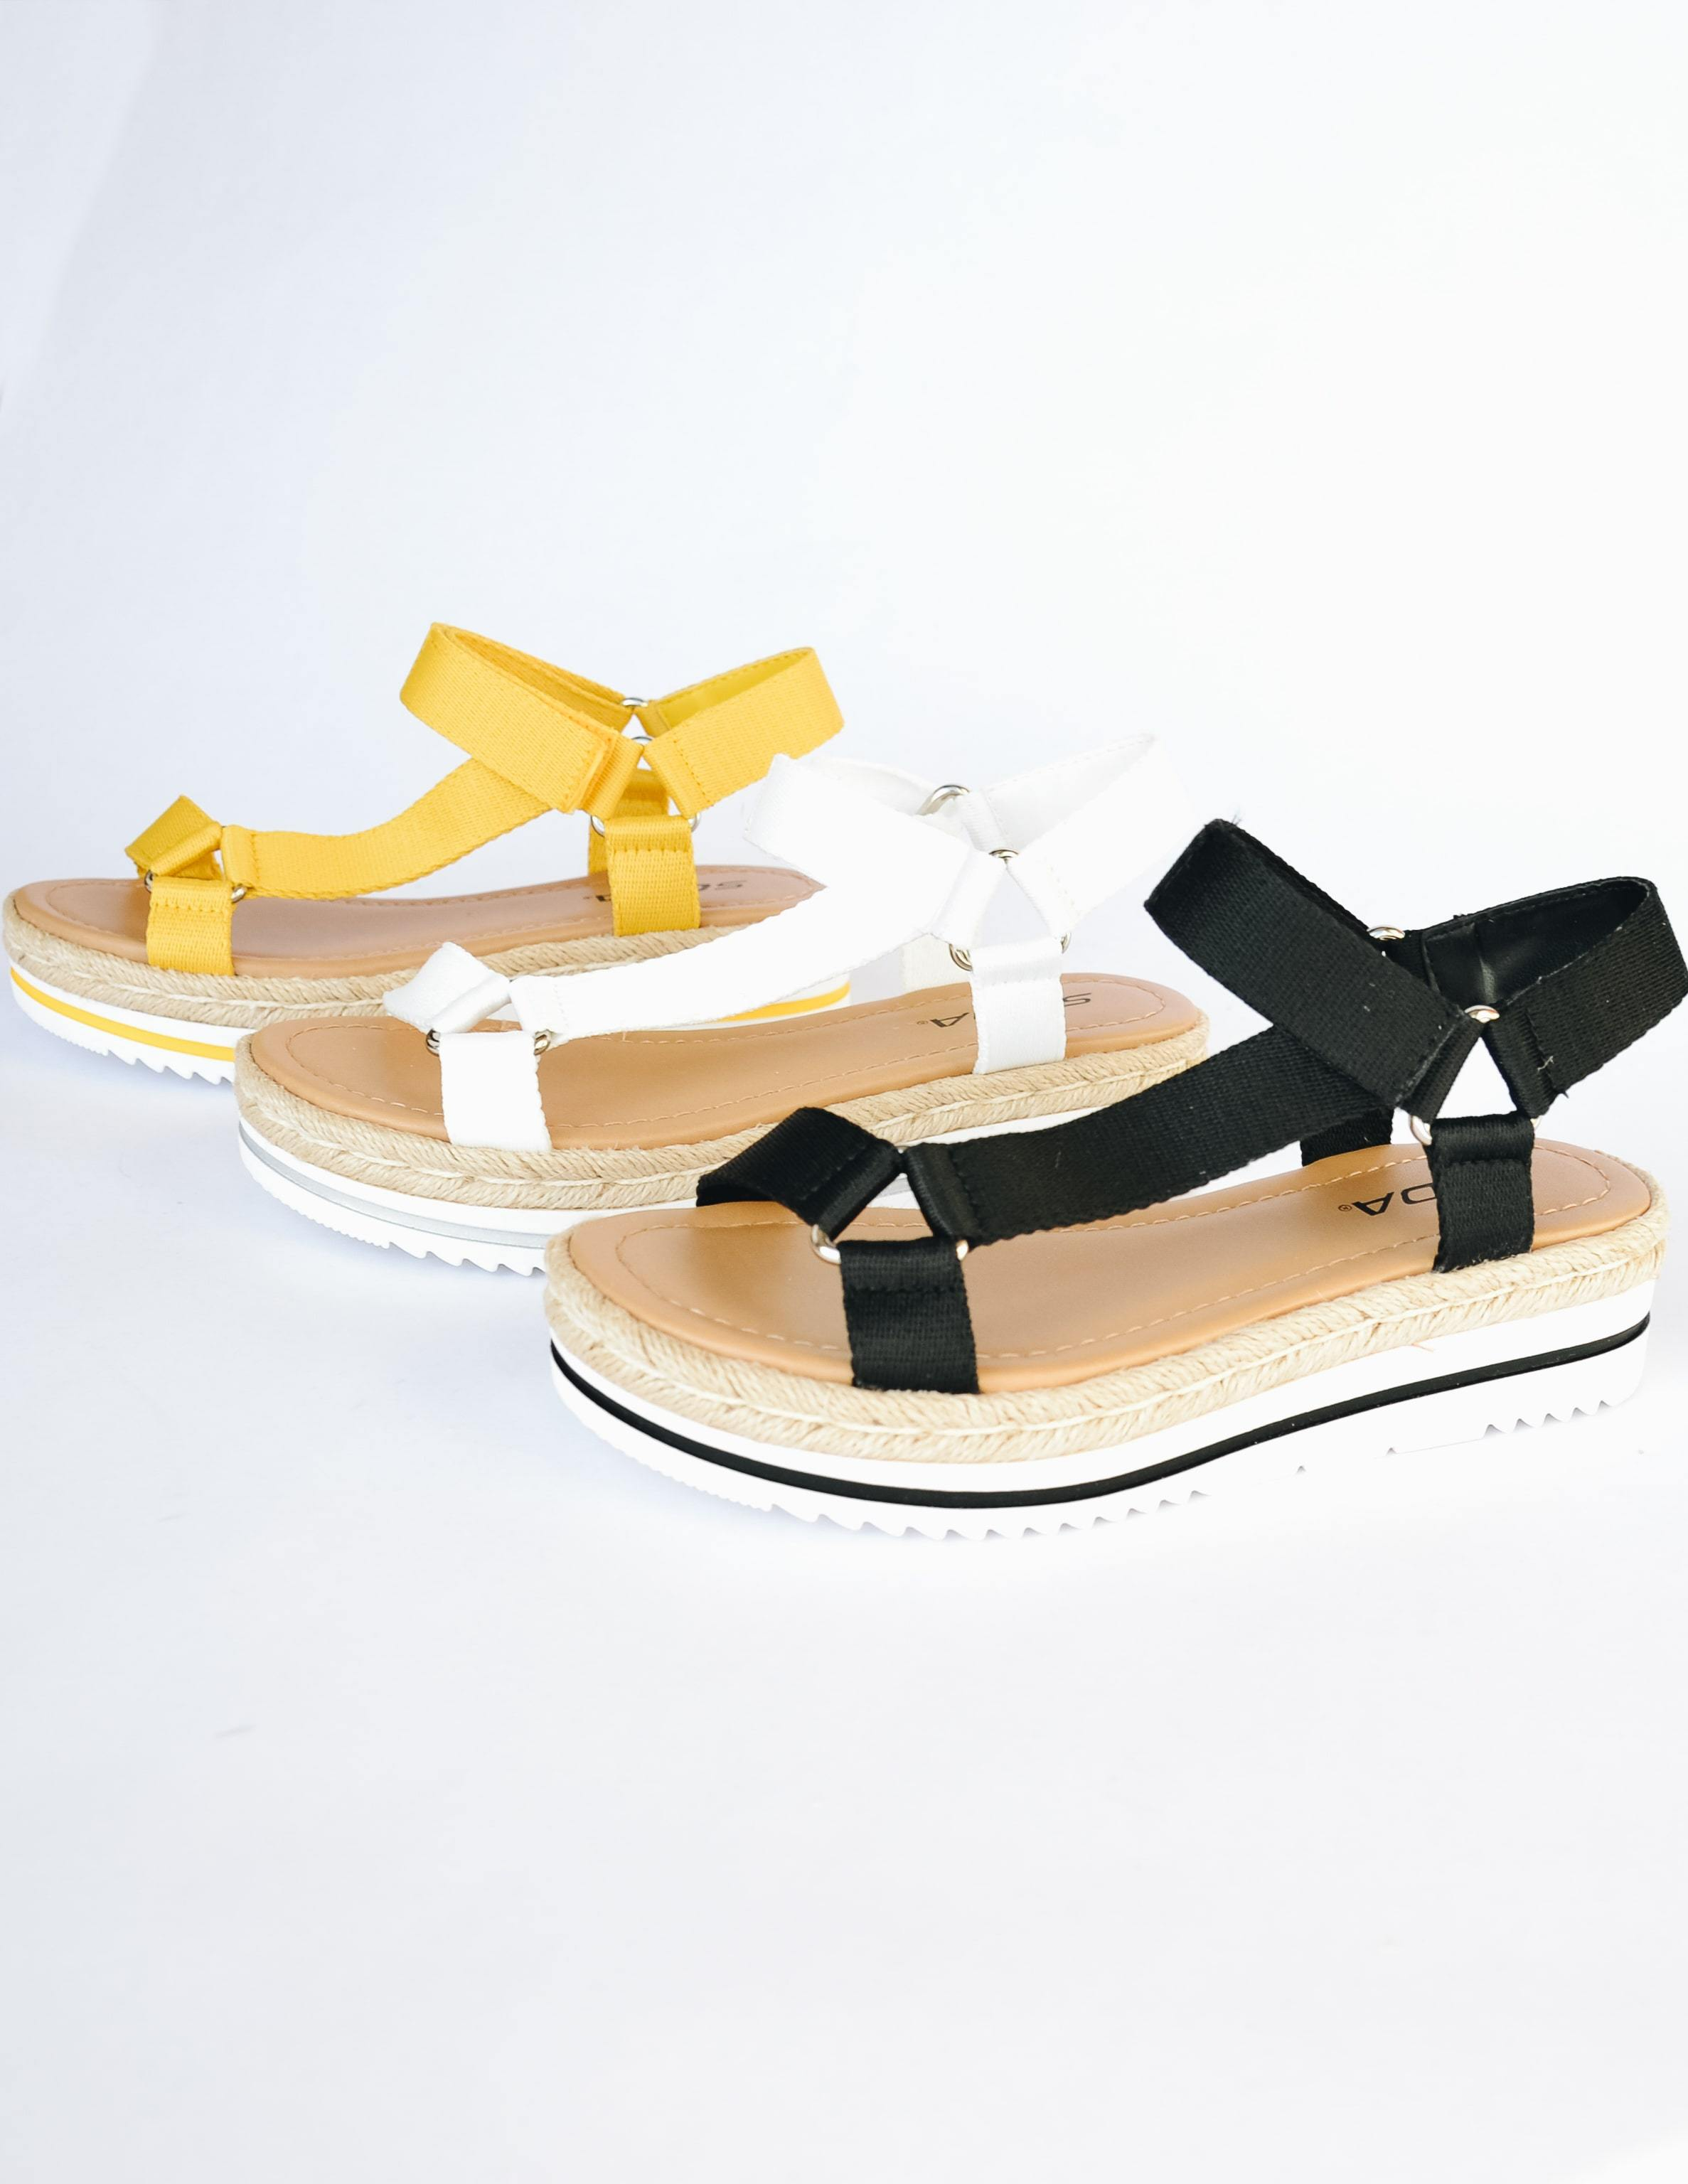 Yellow white and black good sport platform sandals on white background